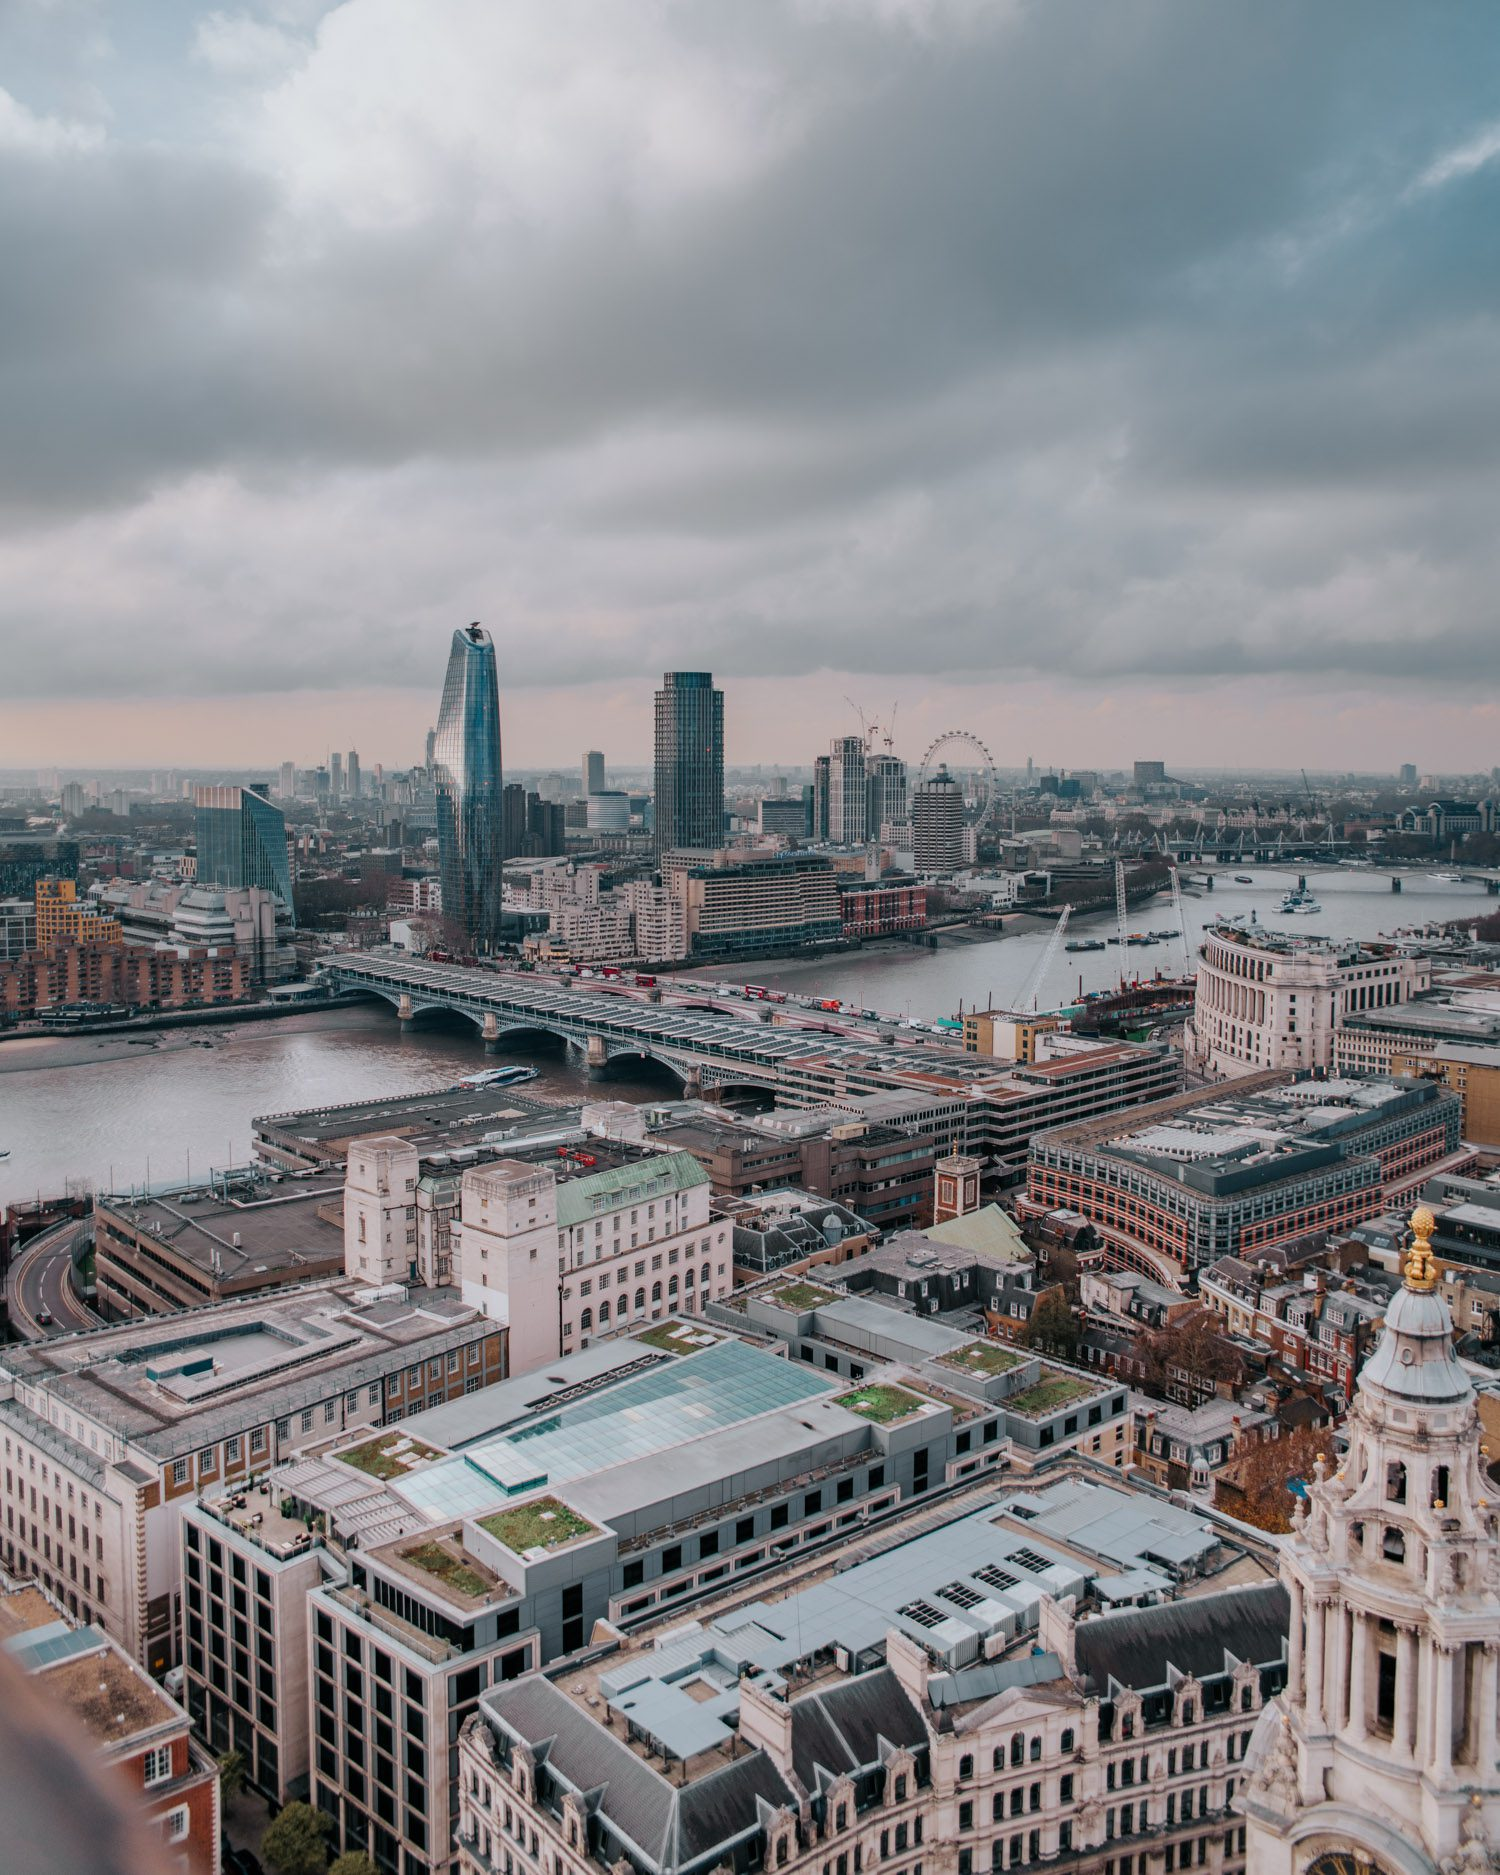 View from St. Paul's Cathedral in London